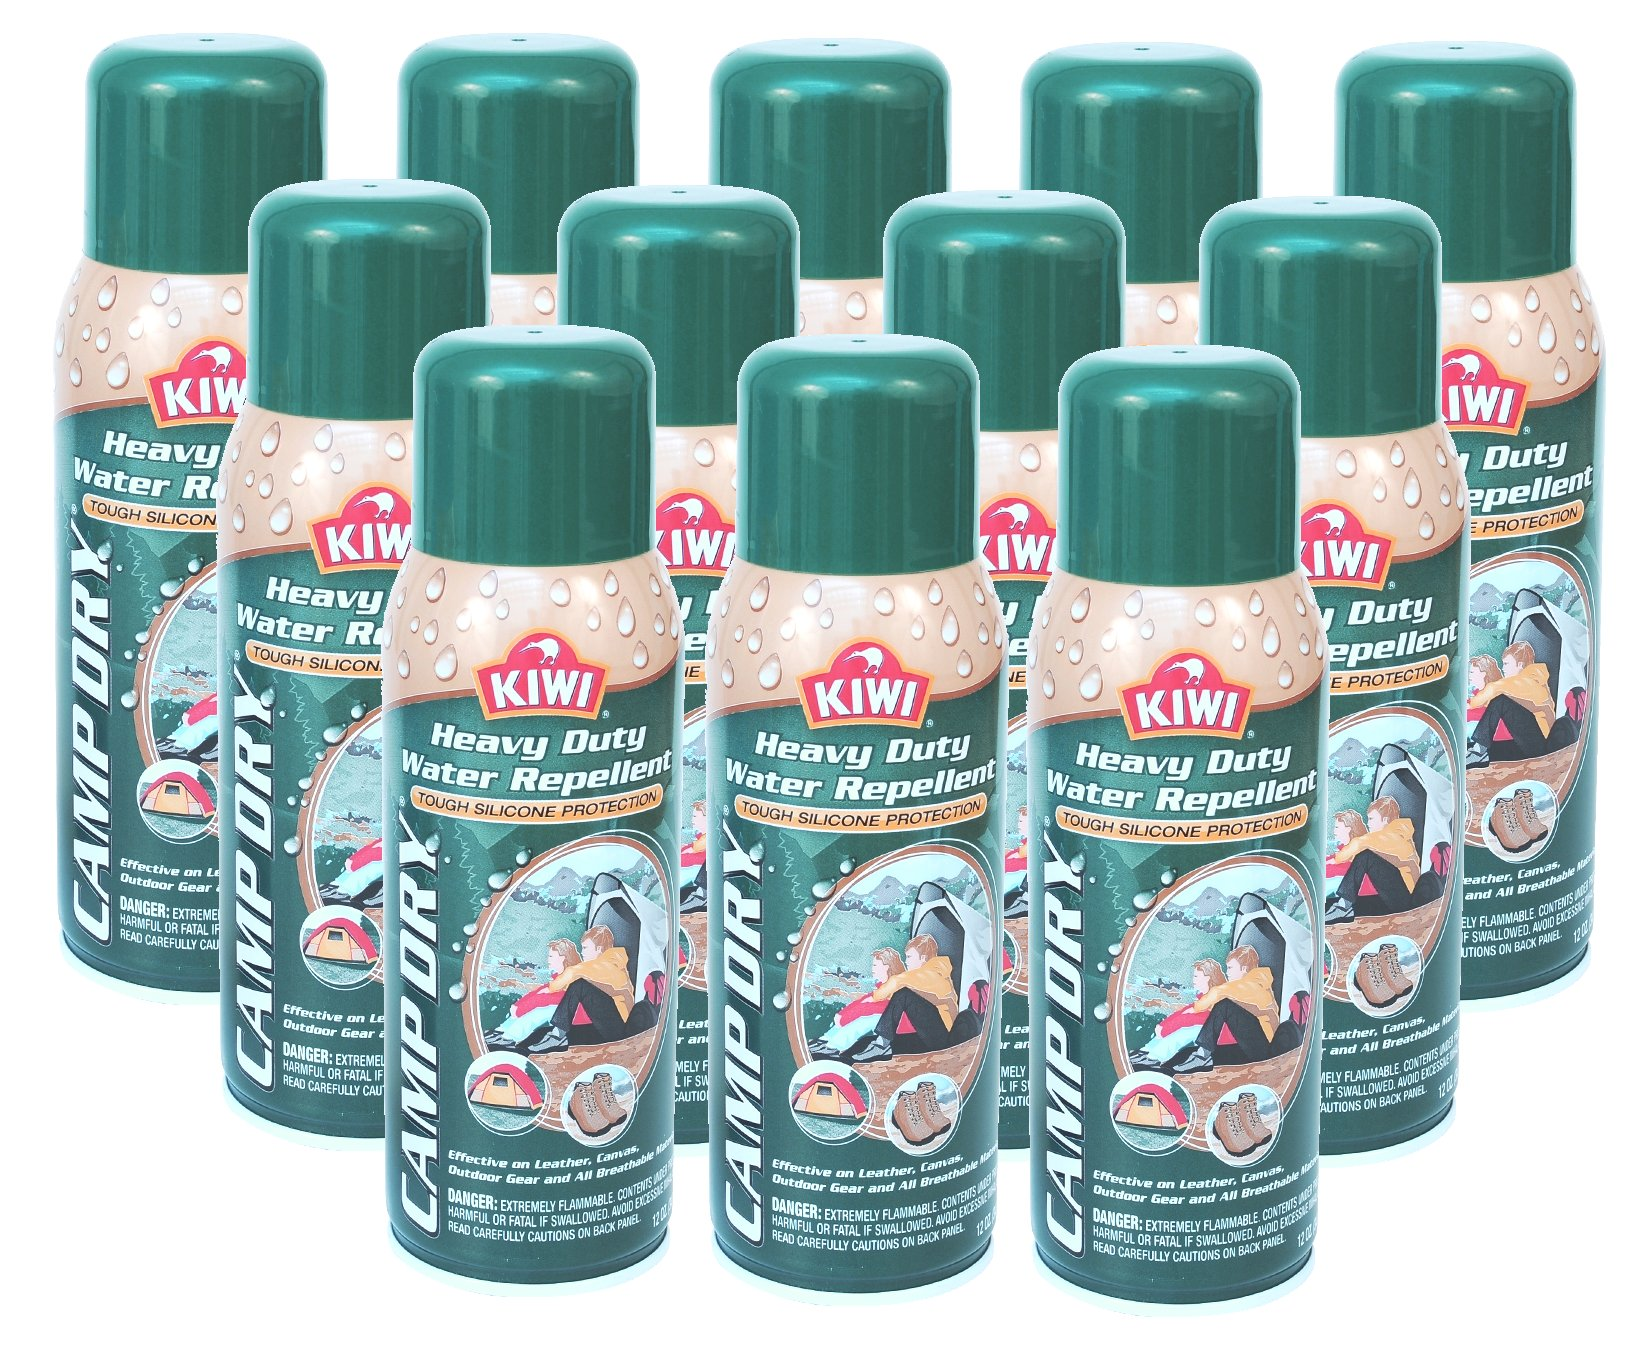 Kiwi Camp Dry, Heavy Duty Water Repellent, 10.5 Ounce (Pack of 12) by Kiwi